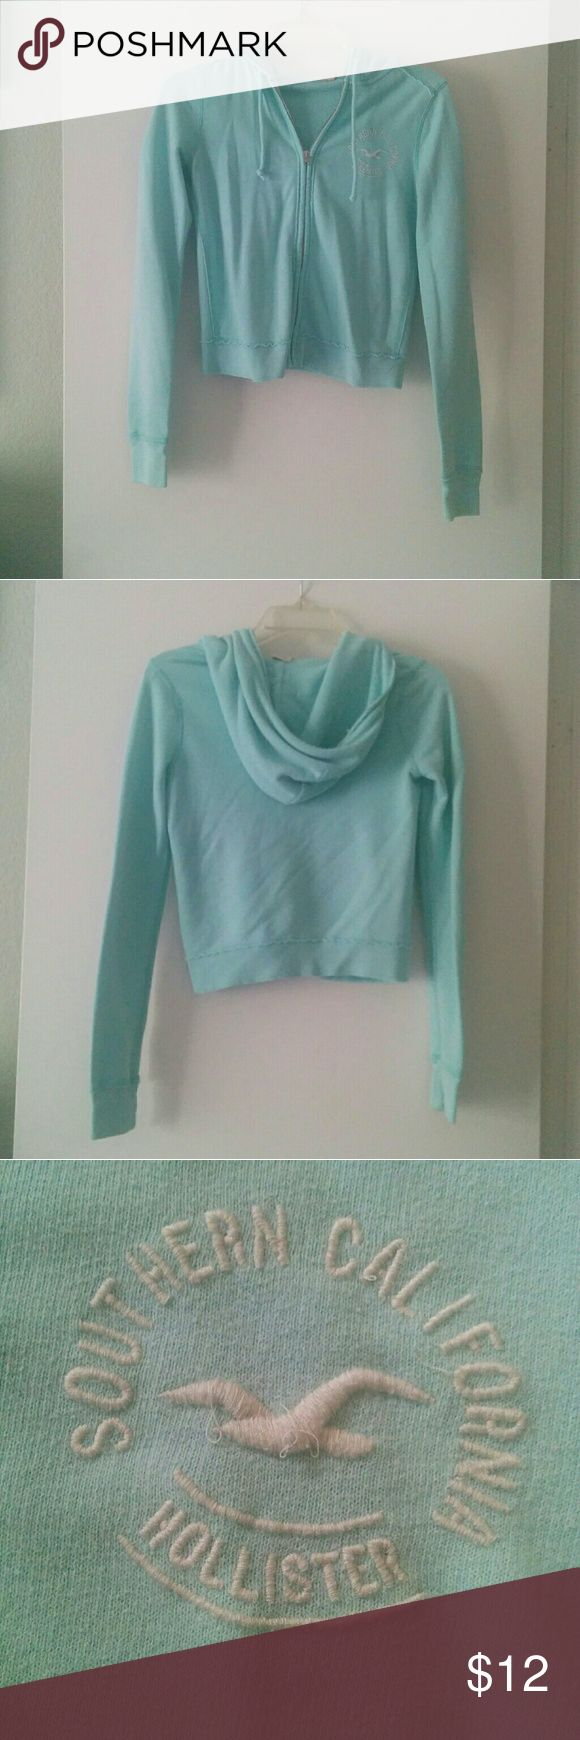 Hollister Light Blue Zip Up Hoodie Used Feel free to negotiate Hollister Jackets & Coats